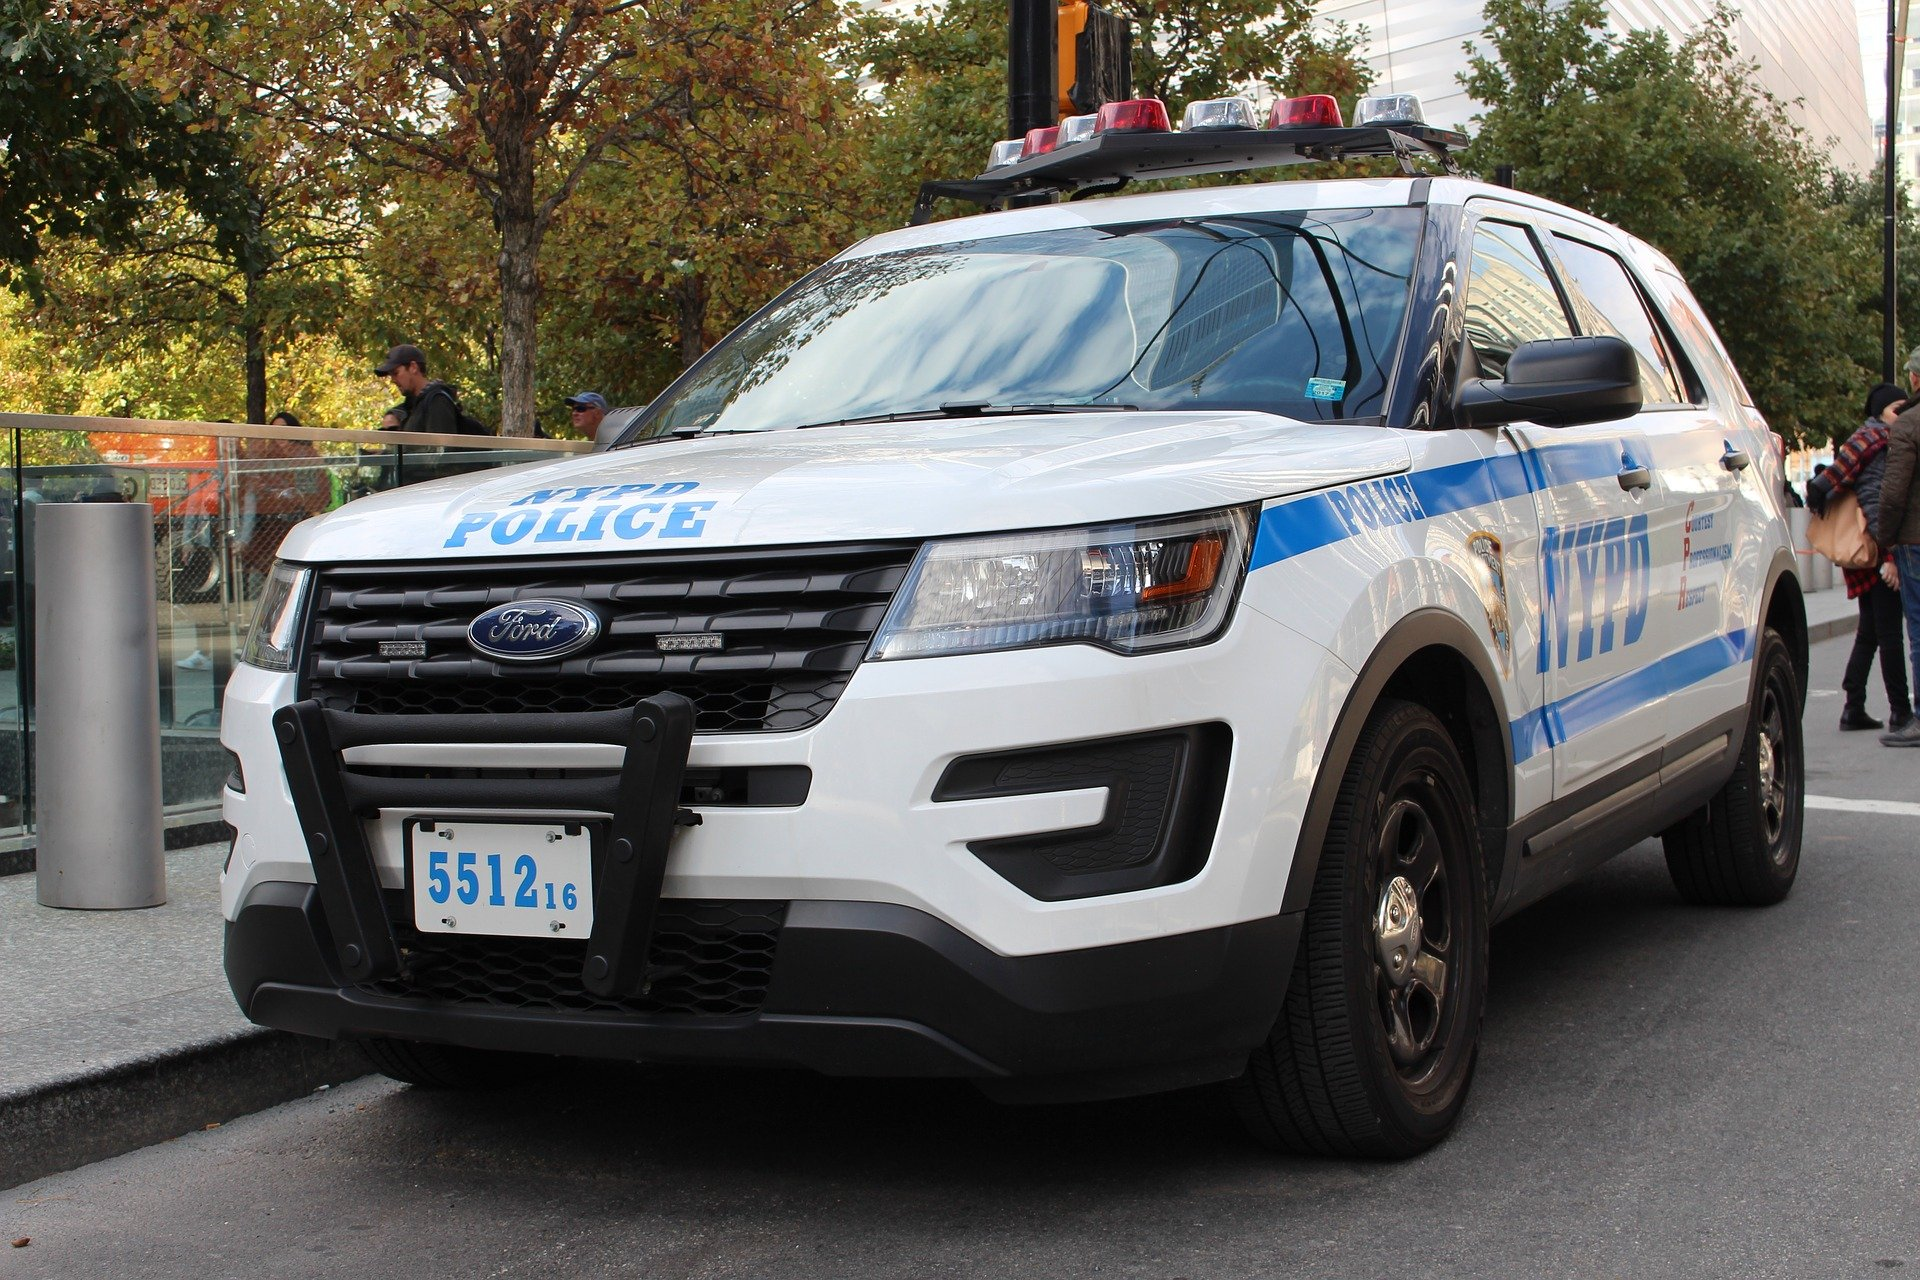 Pictured - New York Police vehicle | Source: Pixabay